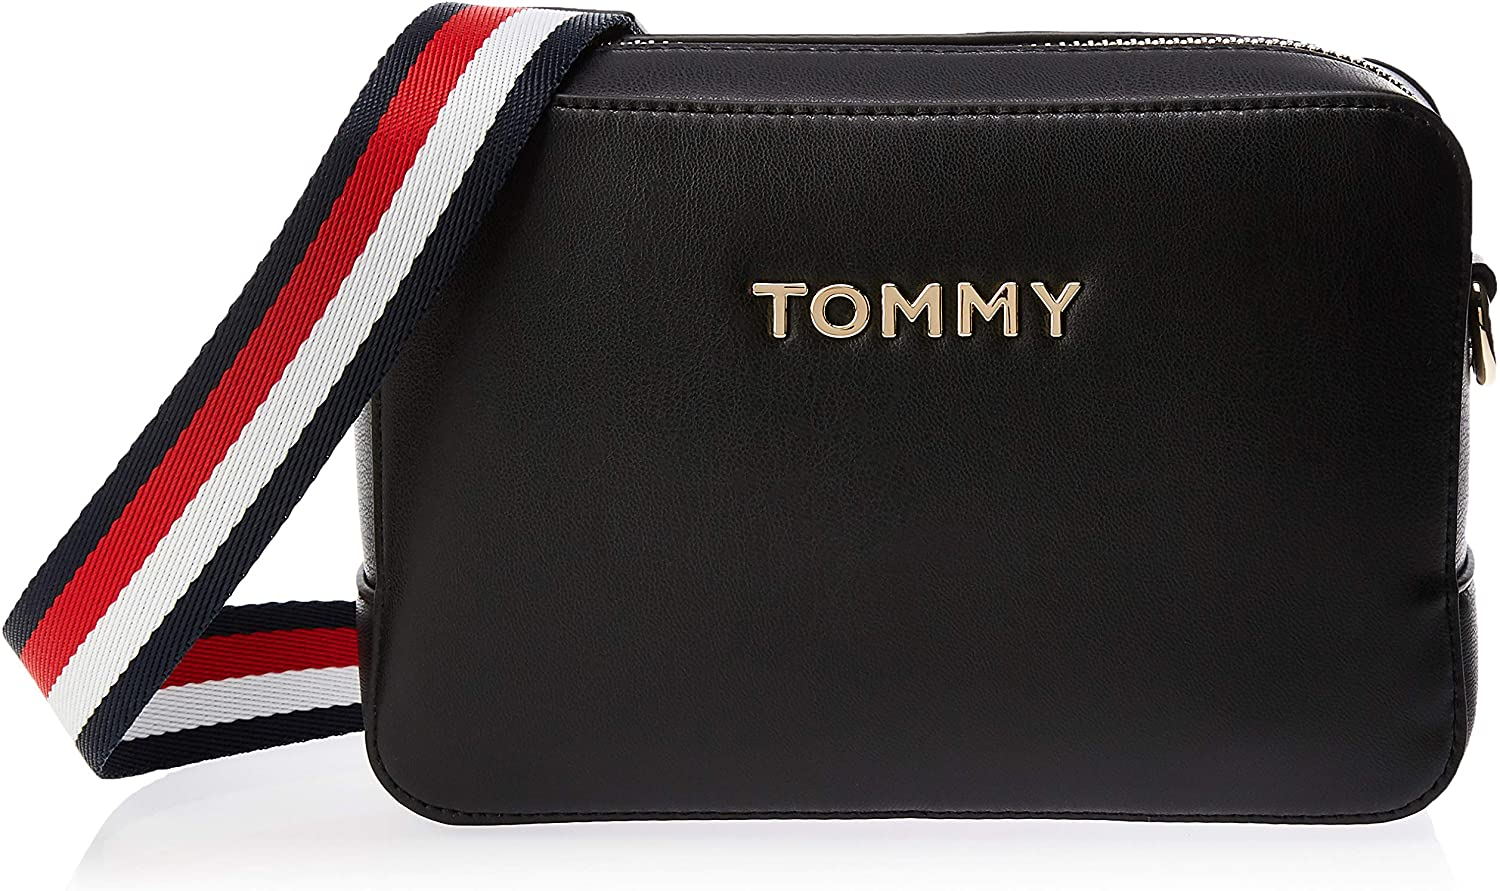 Tommy Hilfiger Bag Women